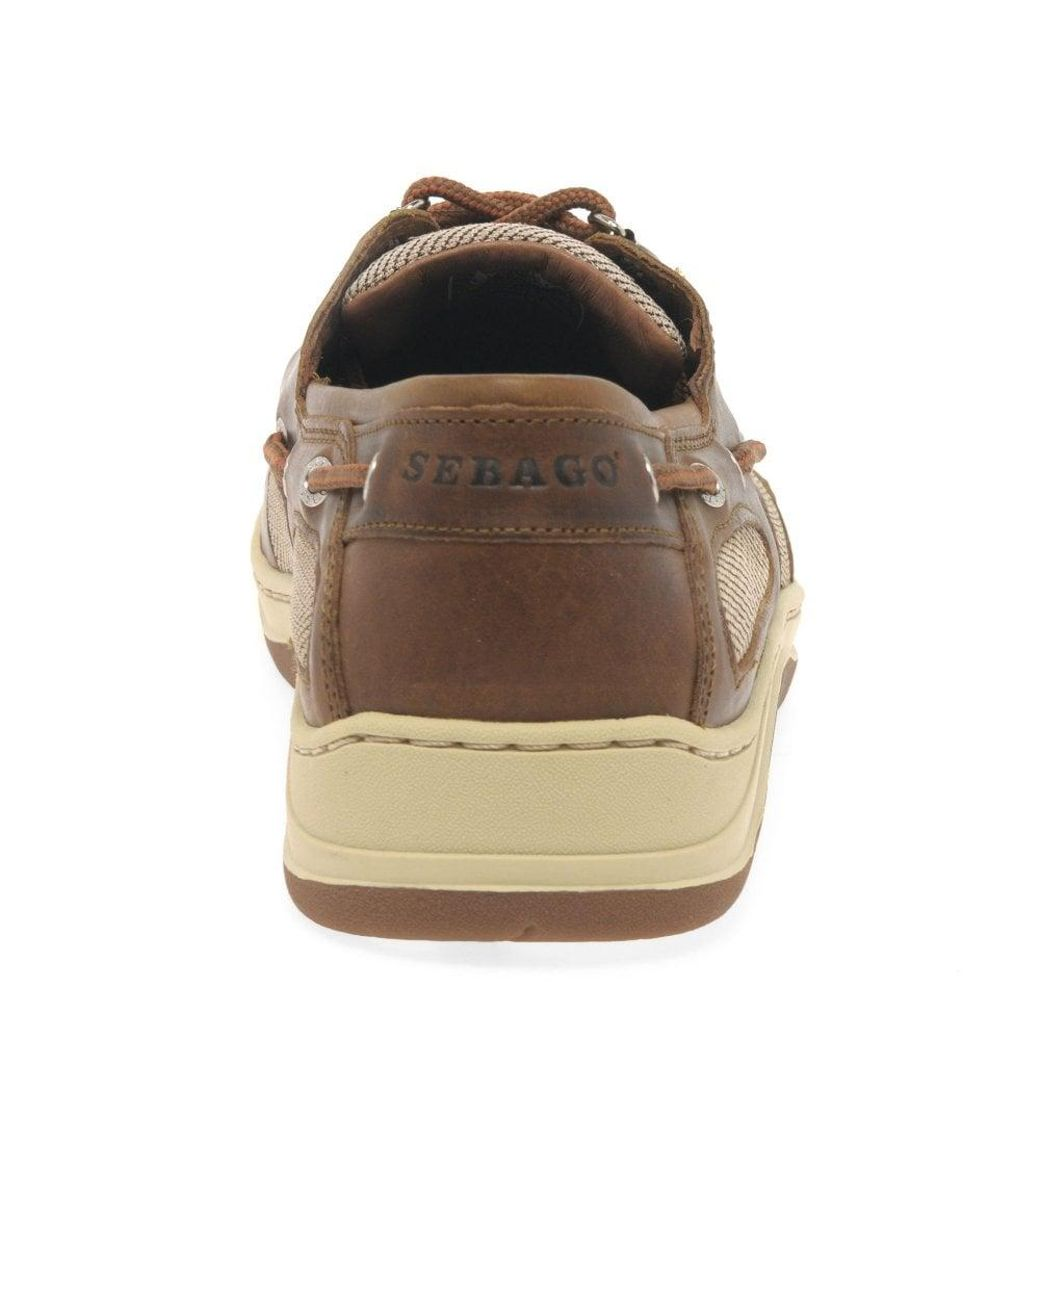 73edf707cd72a Sebago Clovehitch Ii Fgl Wax Mens Boat Shoes in Brown for Men - Save ...